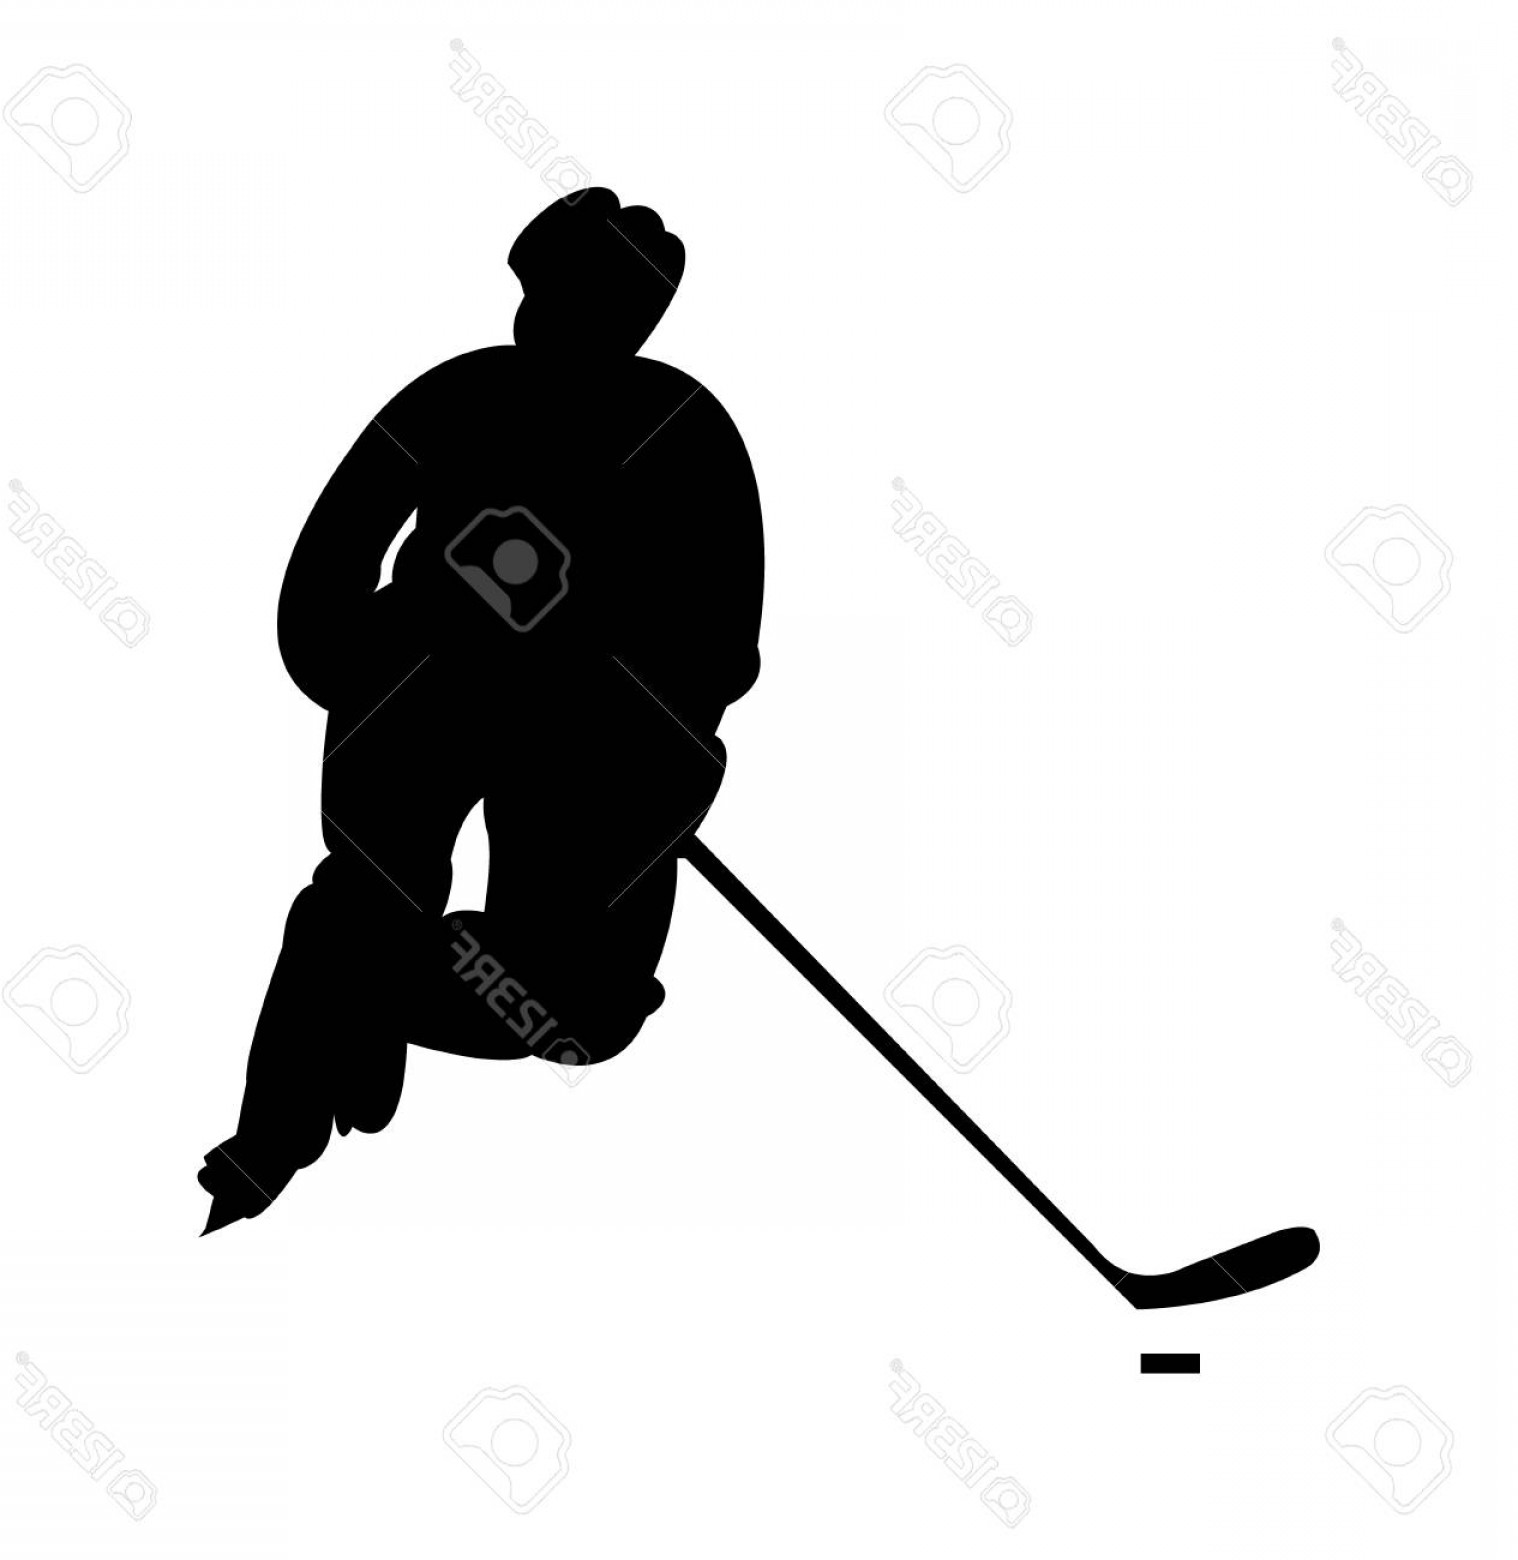 Hockey Player Silhouette Vector: Photostock Vector Hockey Player Silhouette Vector Illustration Isolated On White Background